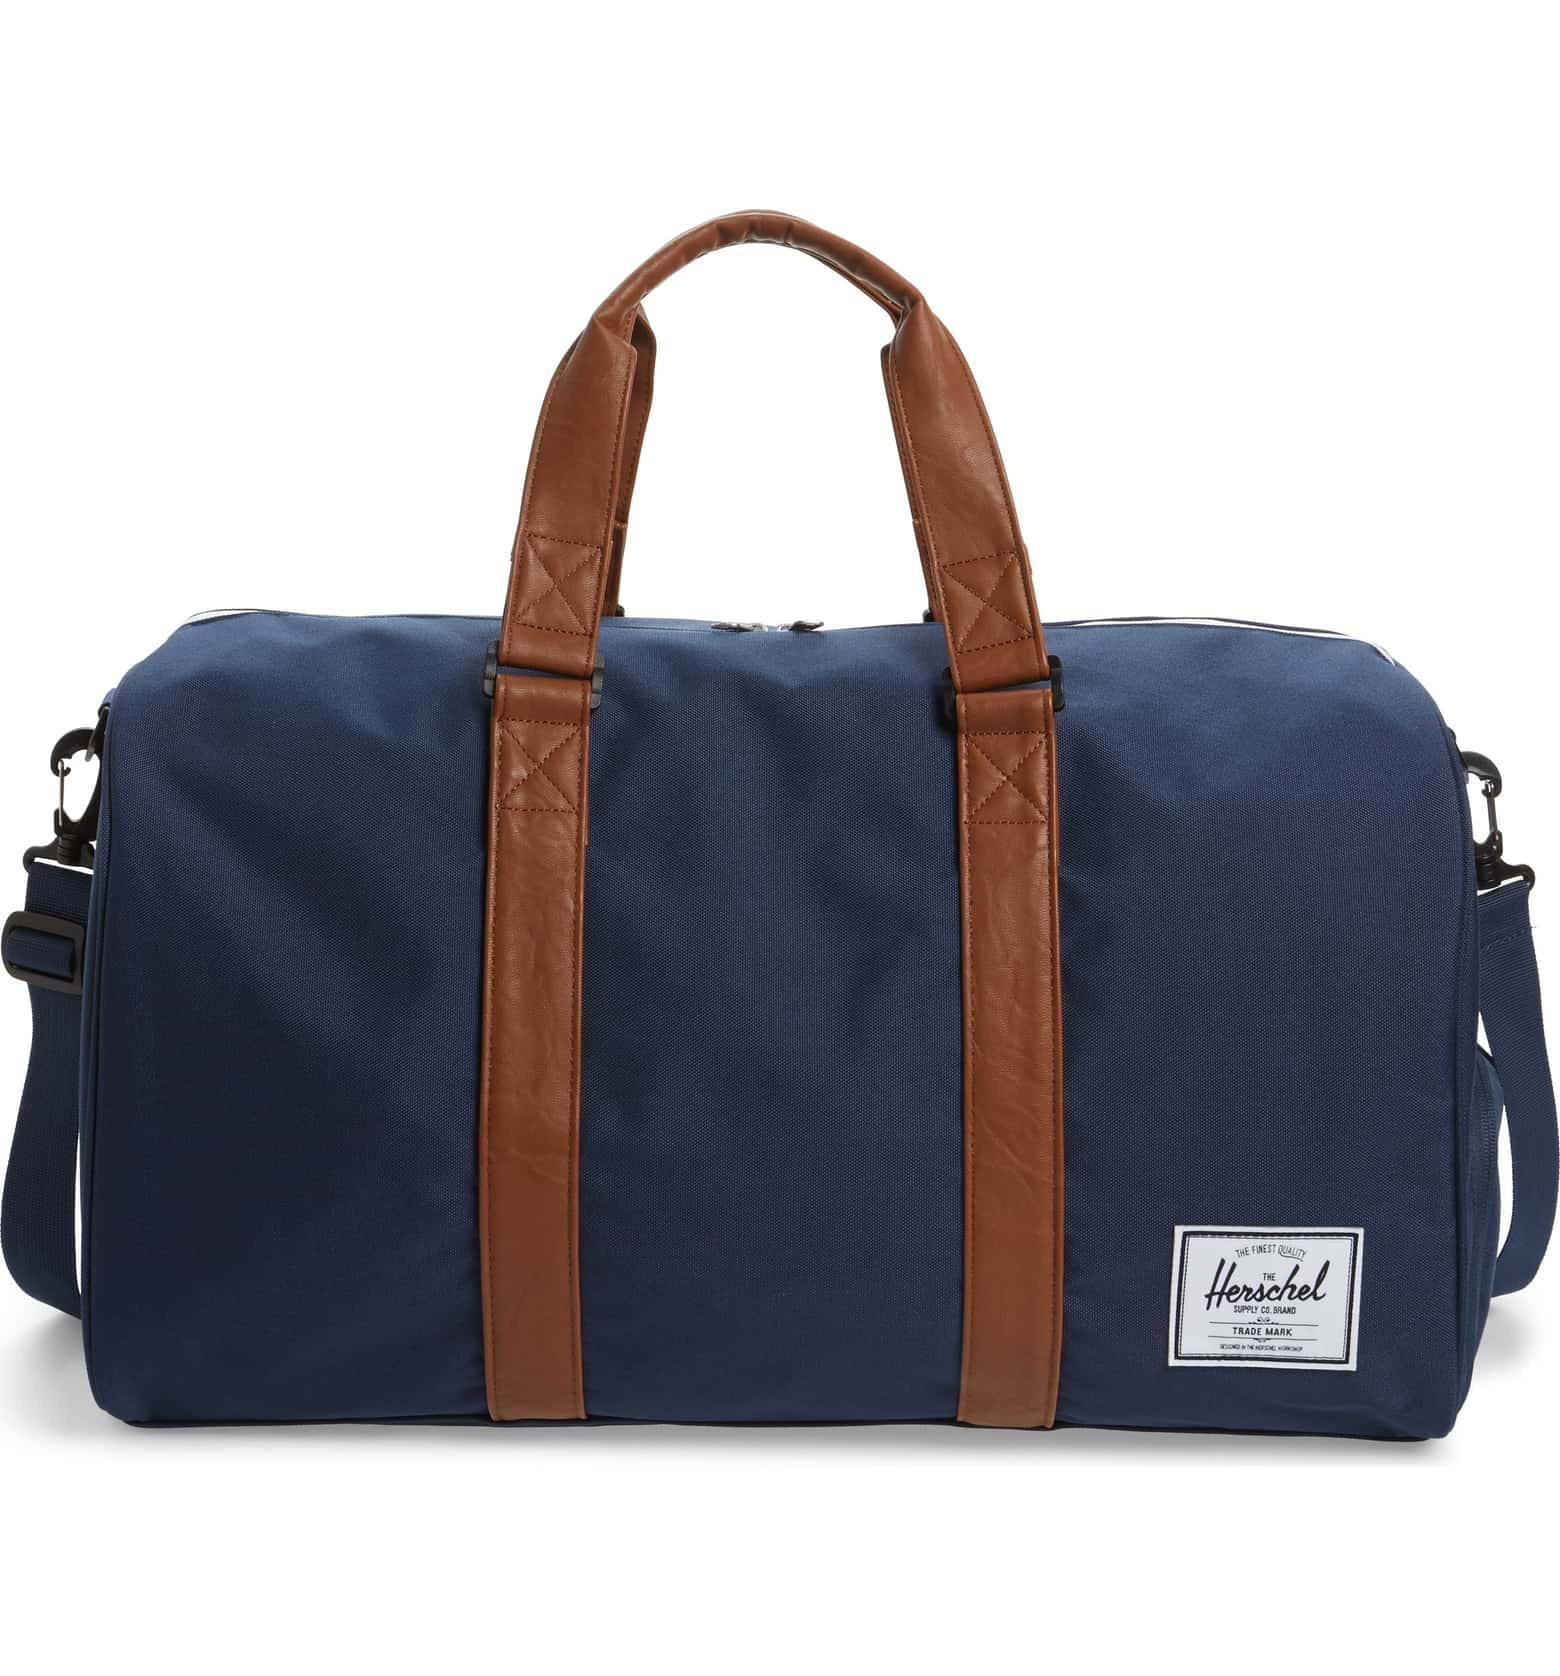 Navy and Brown Novel Duffel Bag